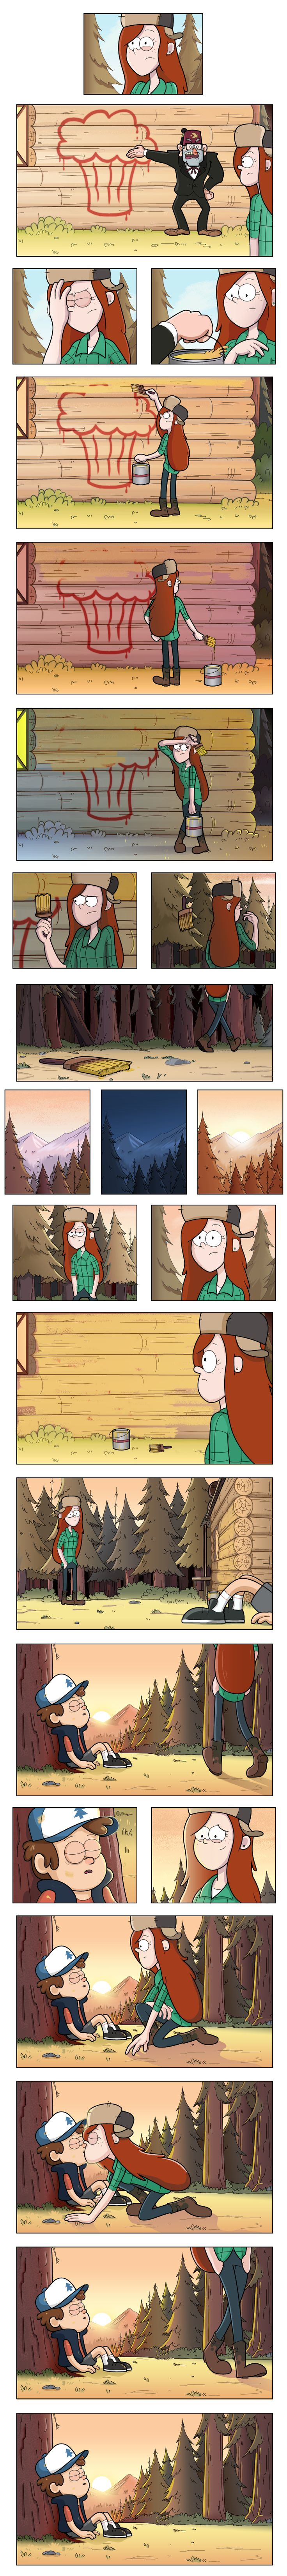 I can imagine Mabel coming out of behind the trees and laughing. And she has paint all over her. ;)